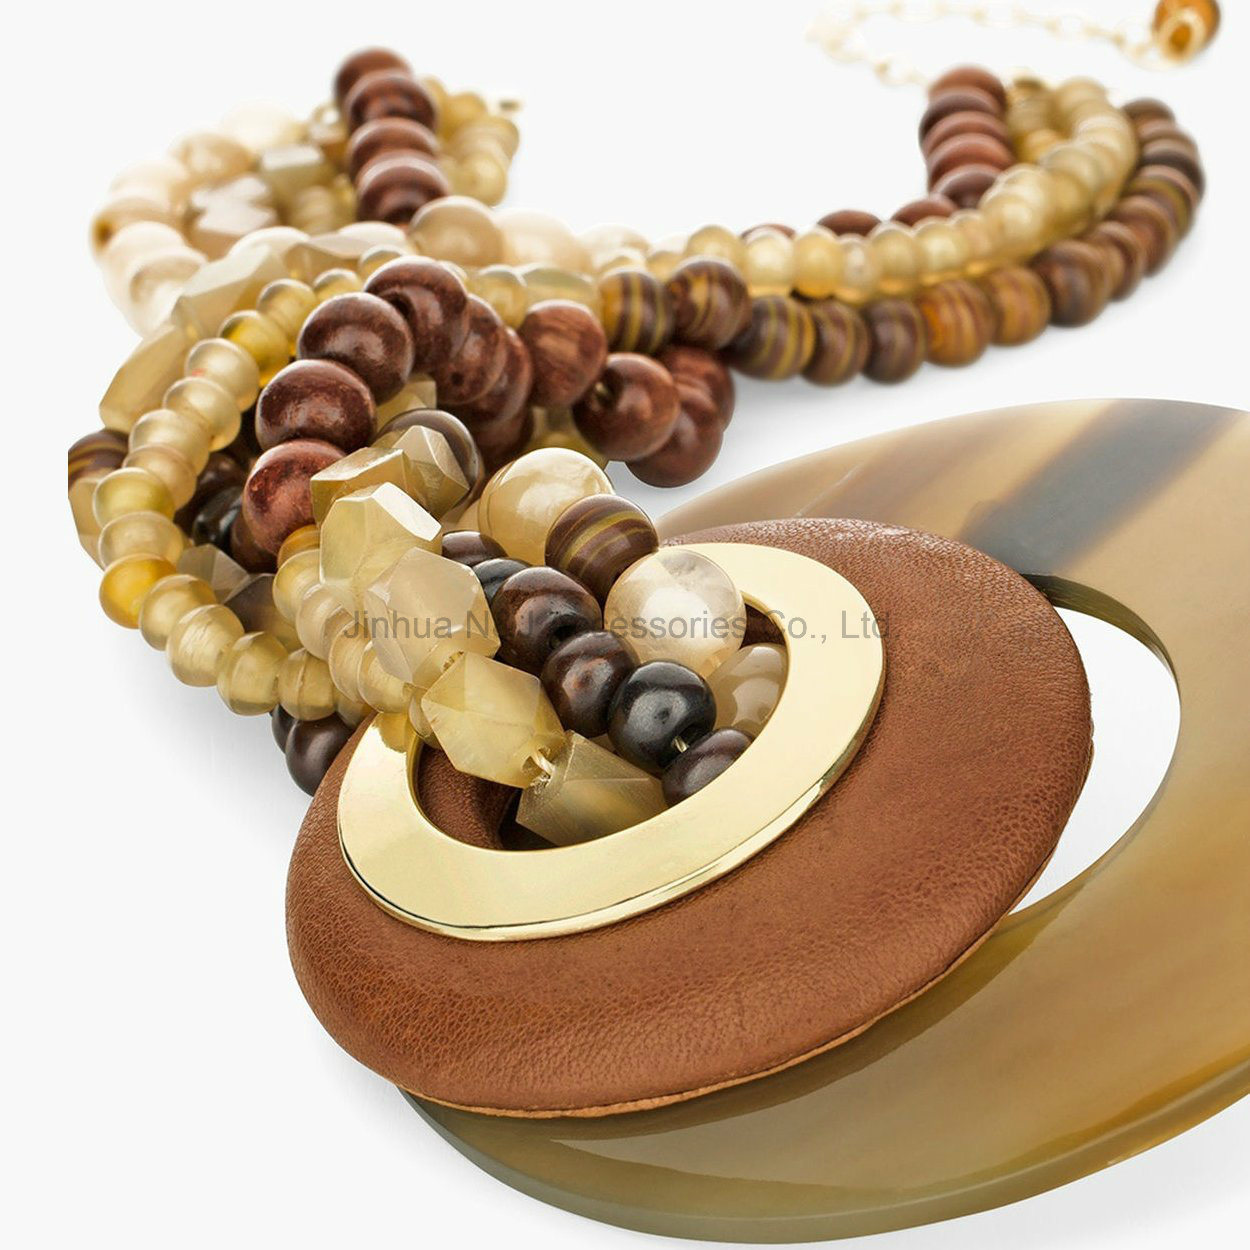 Newest Fashion Handmade Necklaces with Natural Stone Necklace for Women